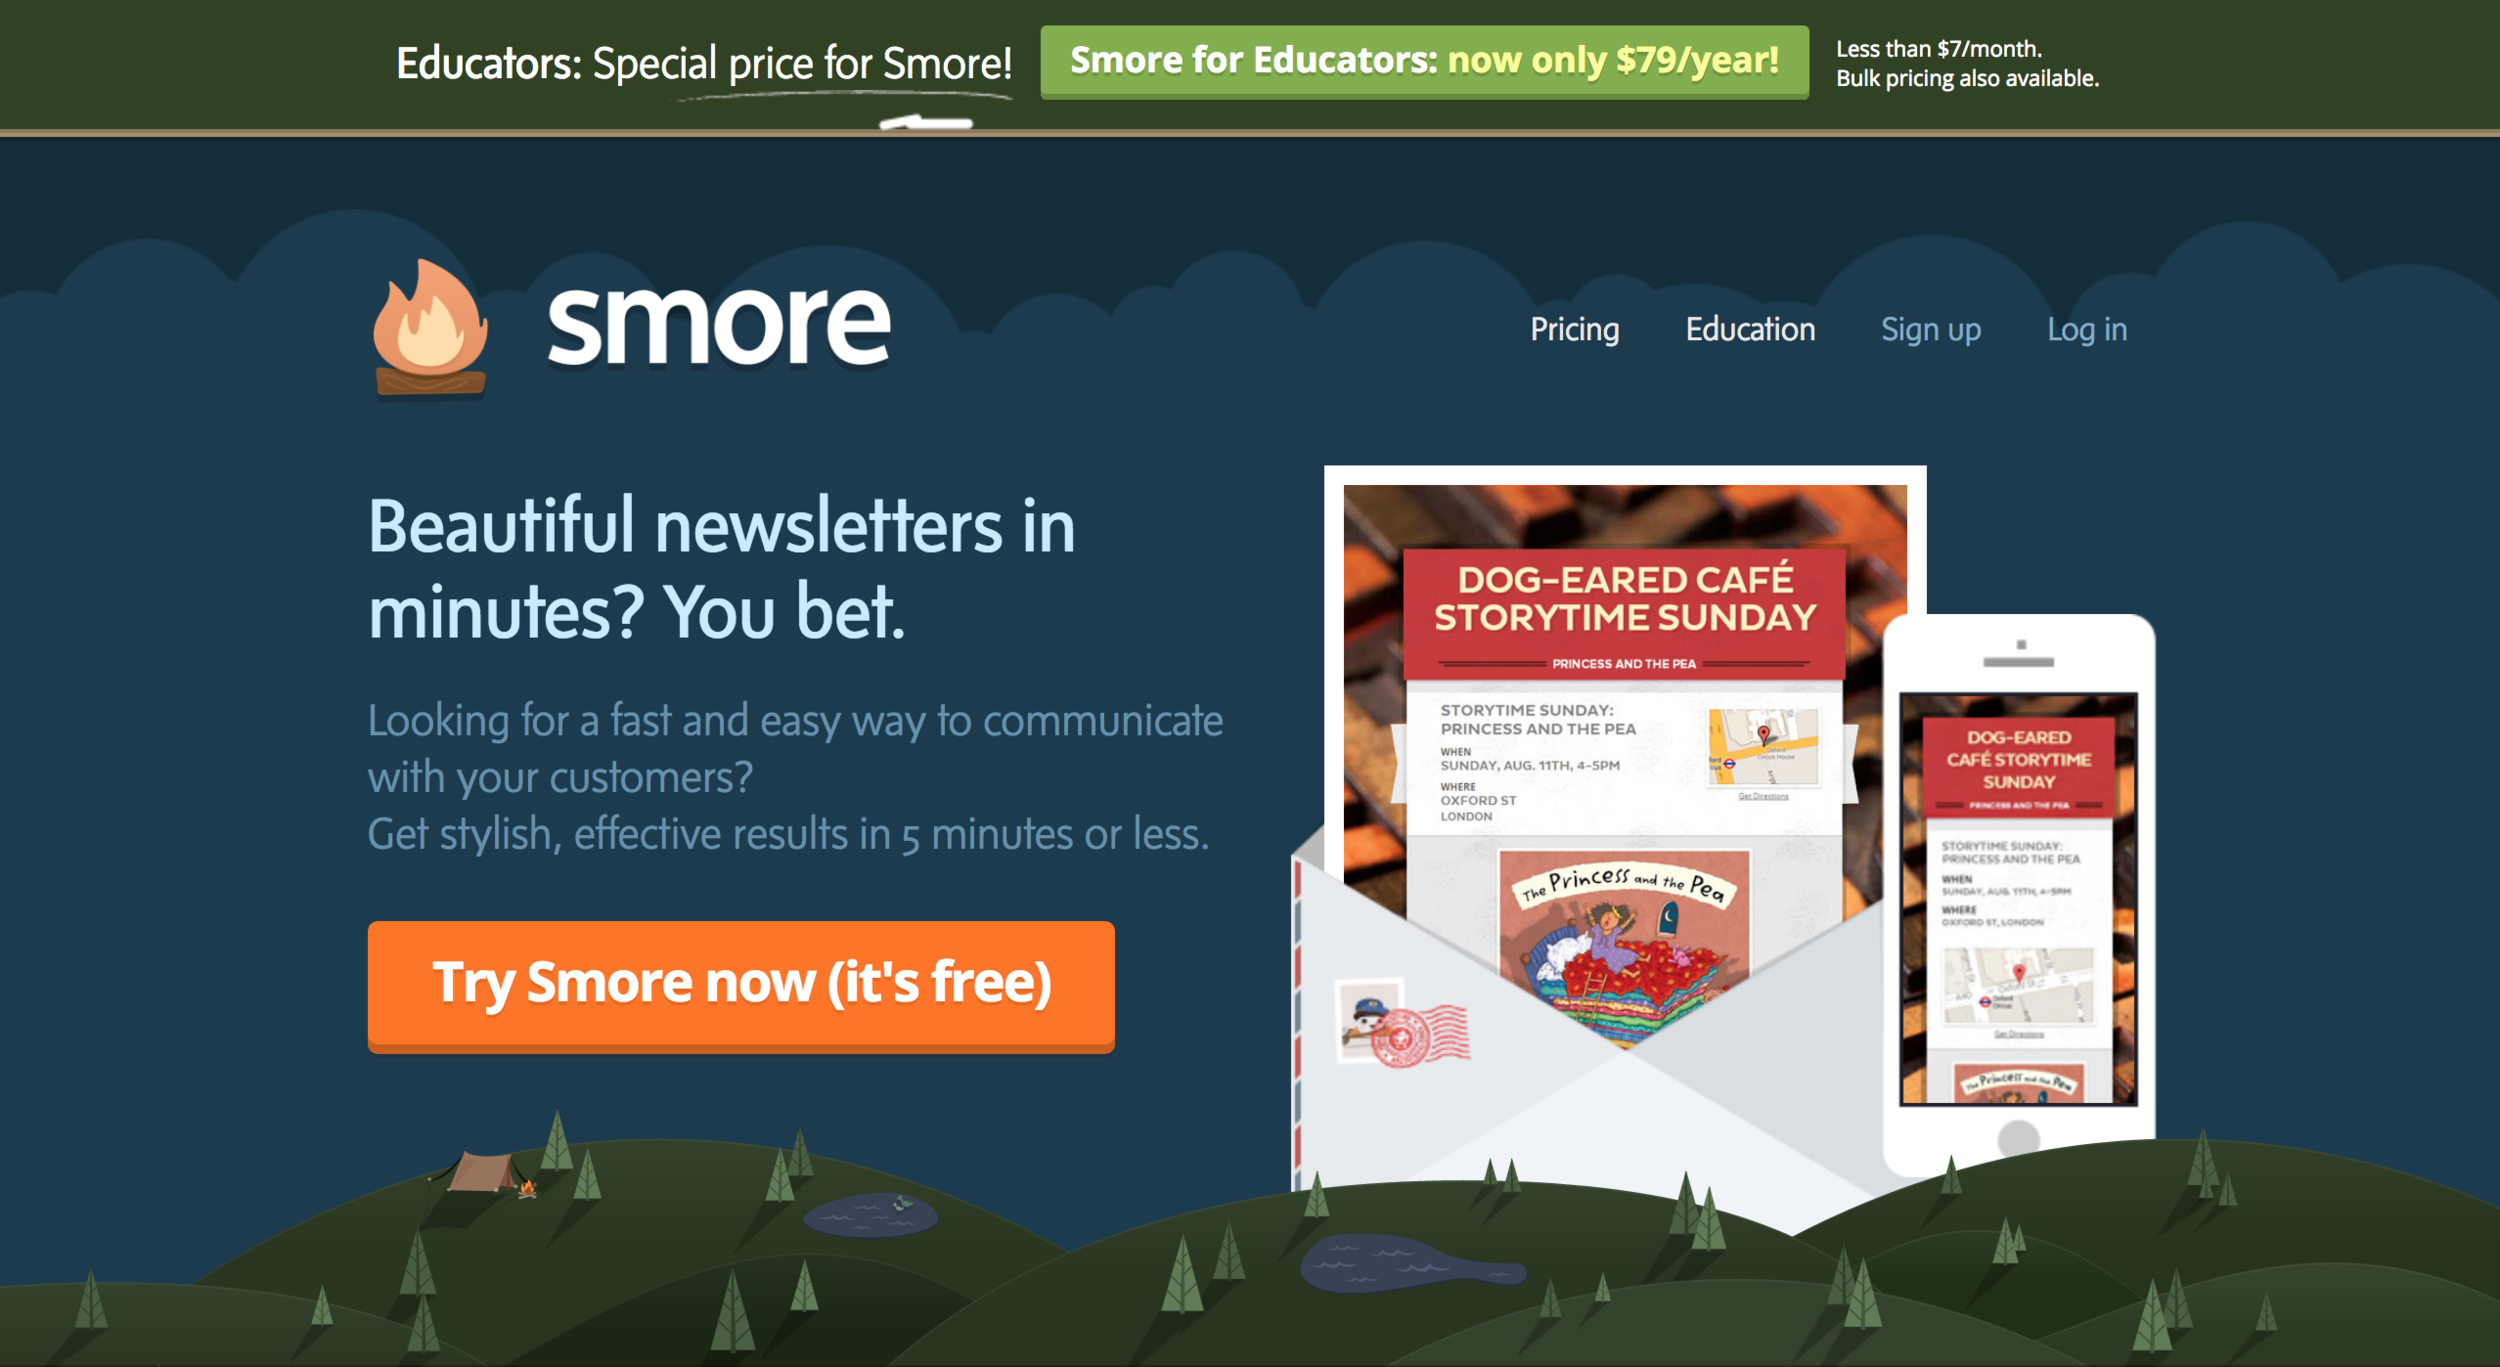 Smore - Most teachers and administrators dream of sending up-to-date newsletters to parents and students, and Smore makes those dreams a reality. It is simple, fast way to turn pictures and short captions into a professional looking newsletter for parents and students that they can read on their phones.